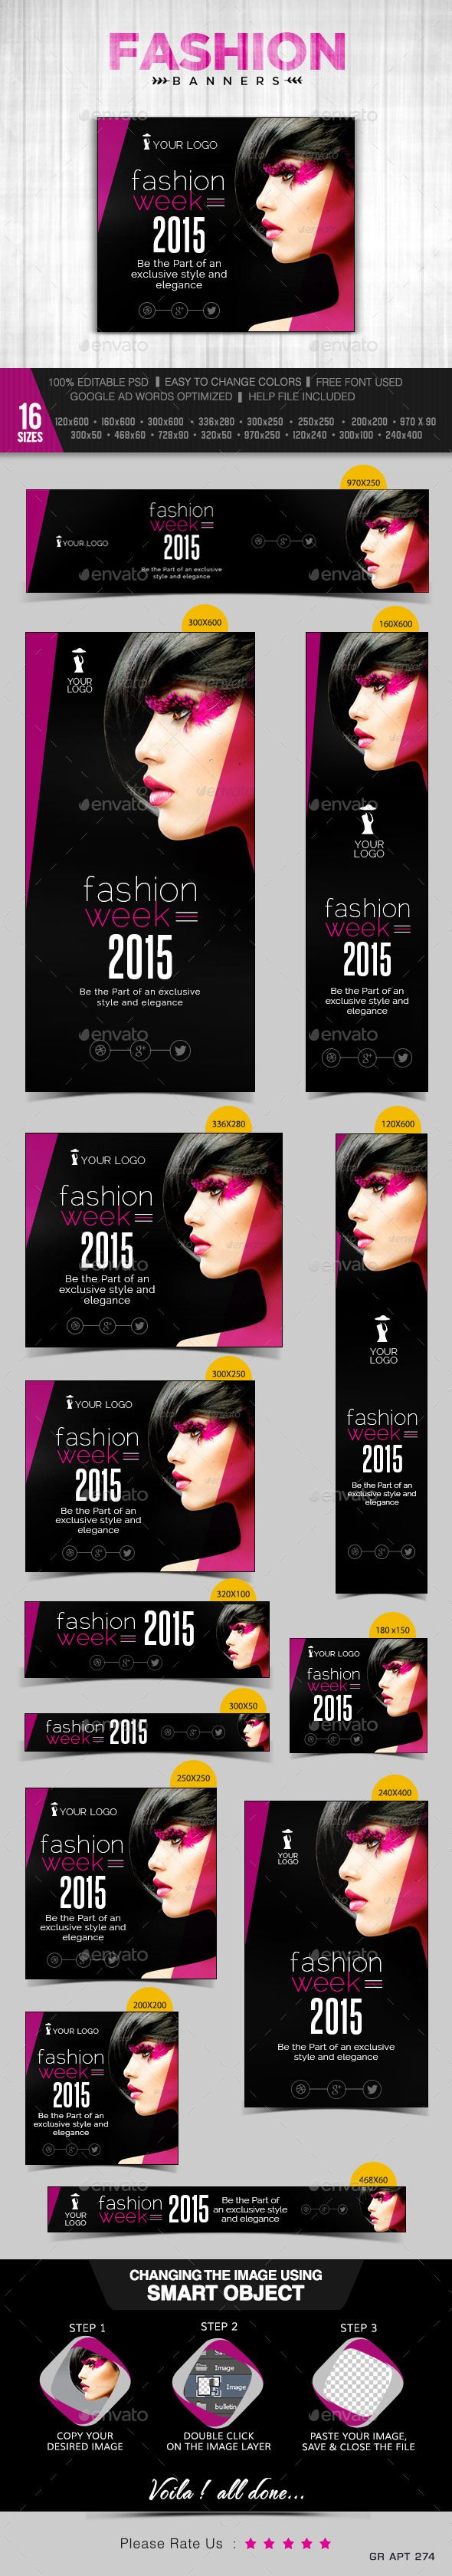 Fashion Banners Template PSD   Buy and Download: http://graphicriver.net/item/fashion-banners/9982691?ref=ksioks